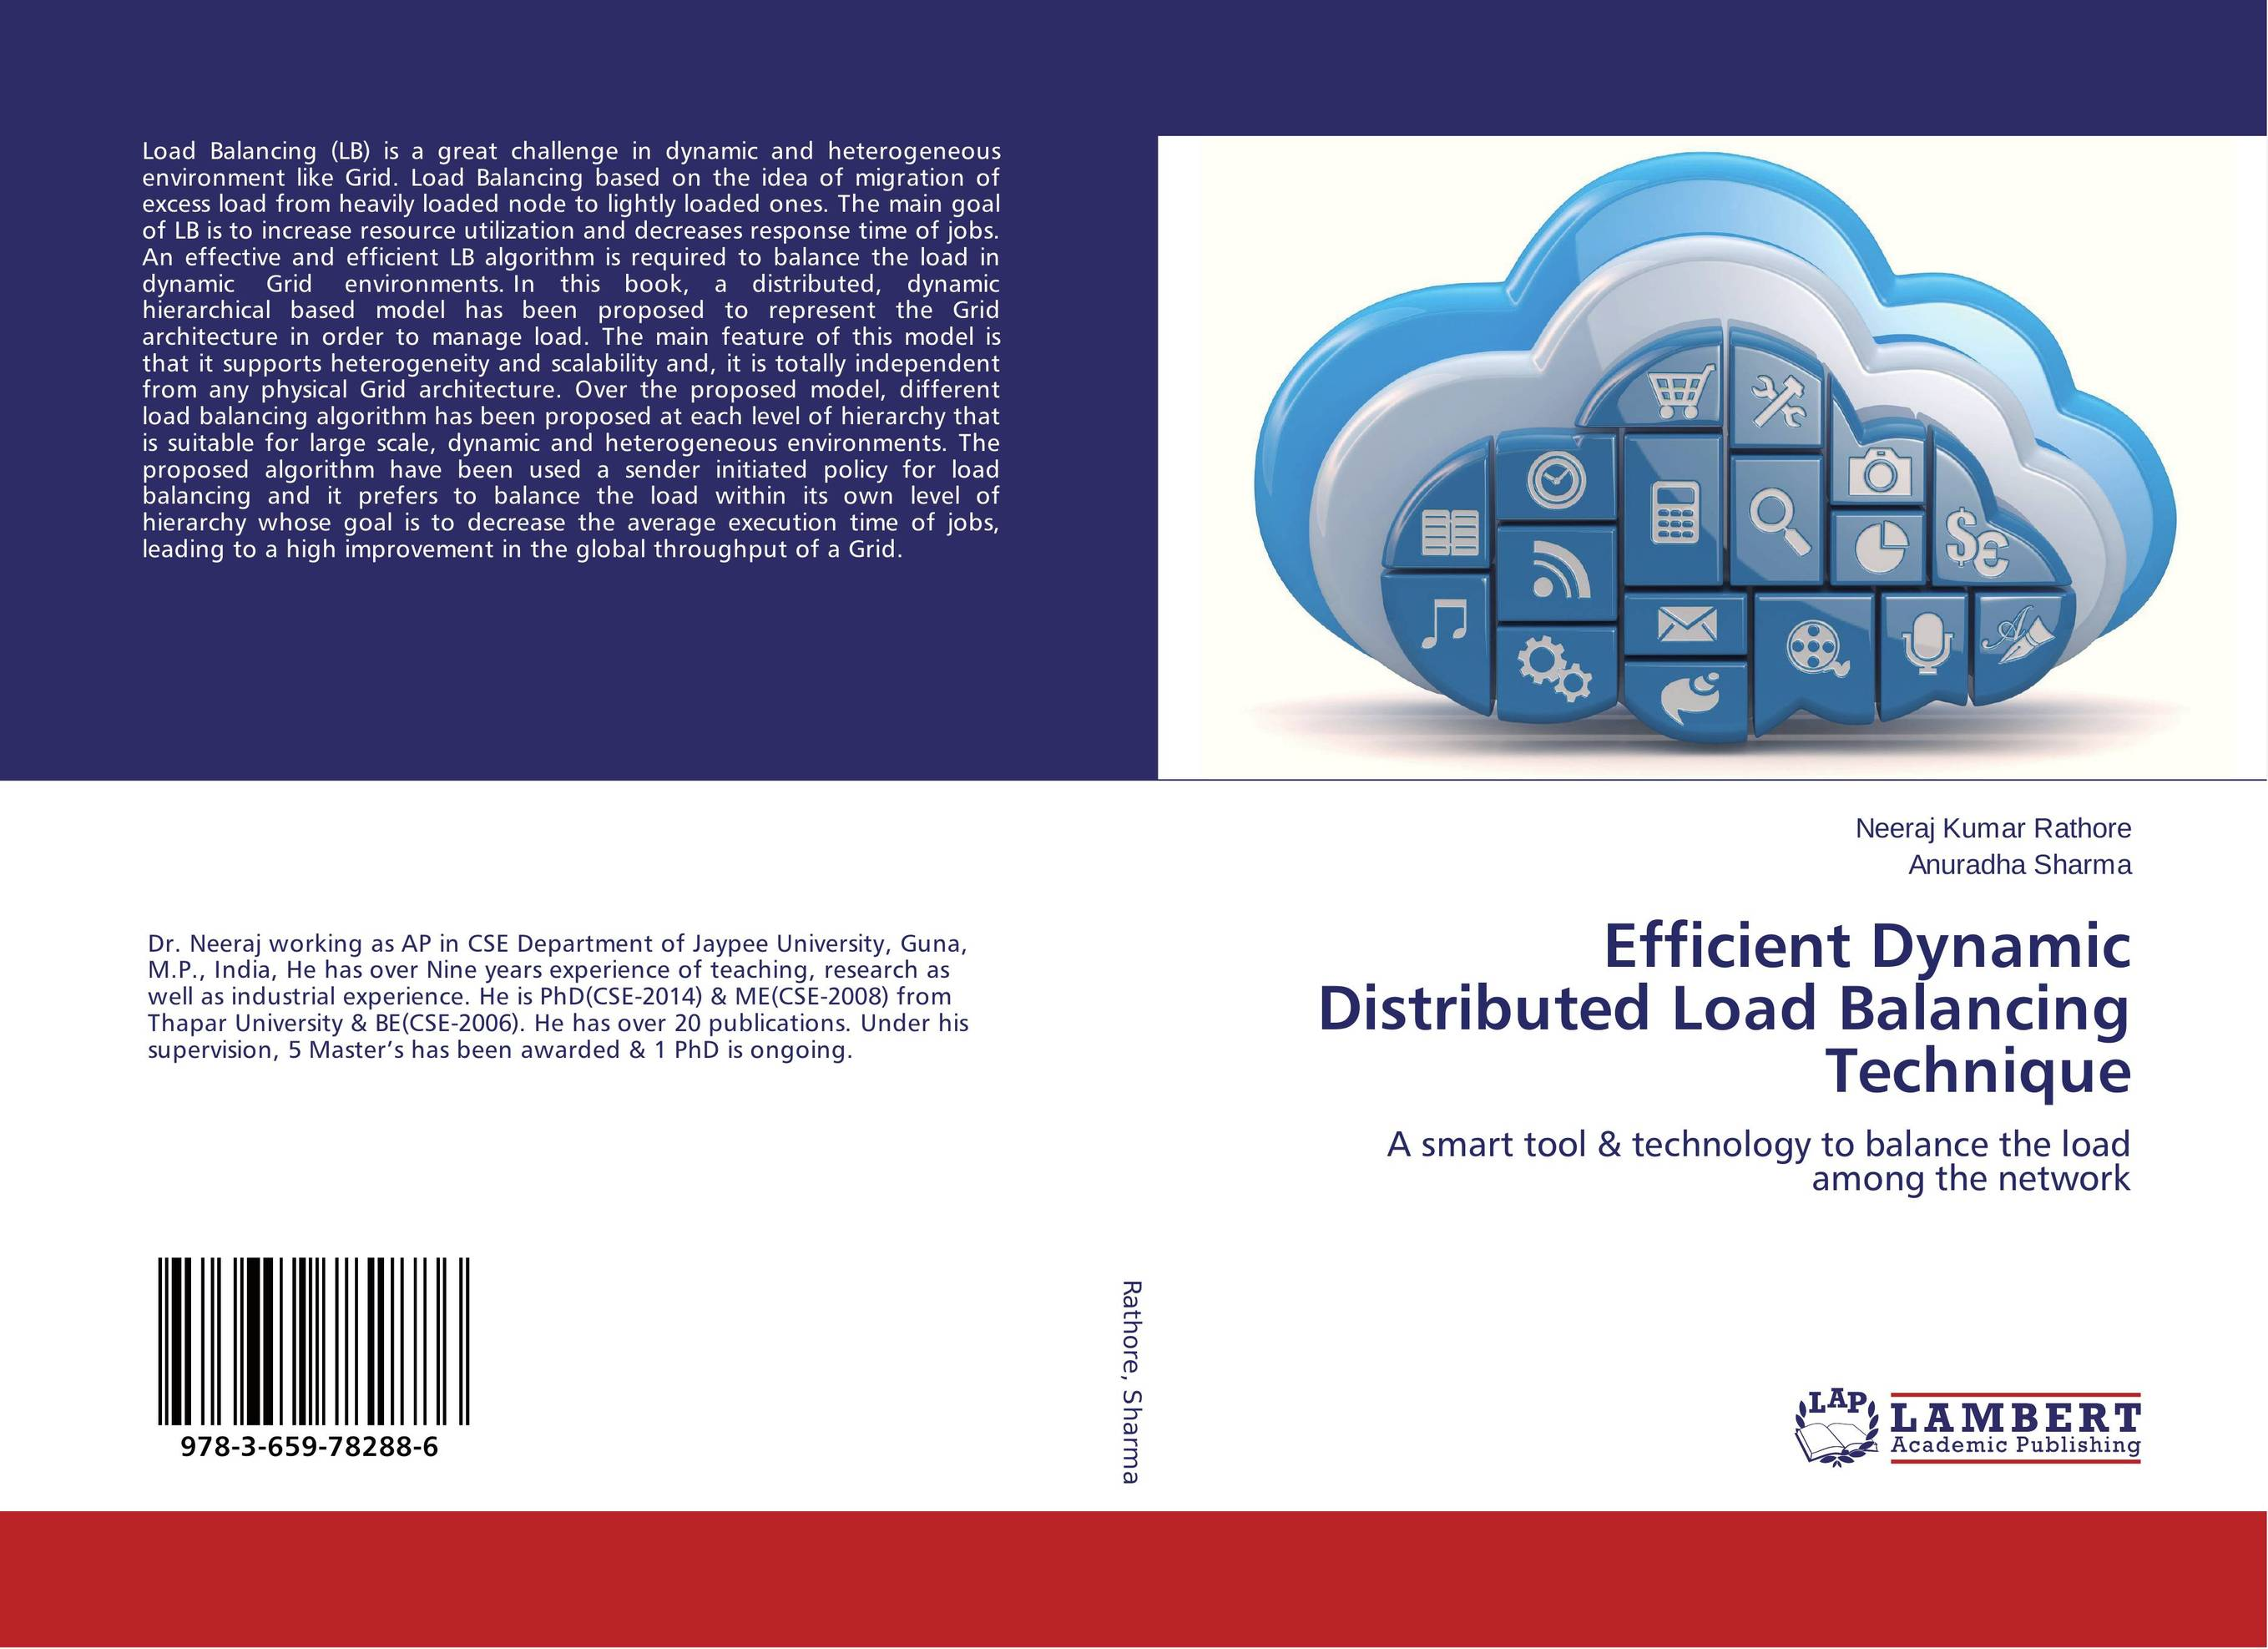 Efficient Dynamic Distributed Load Balancing Technique